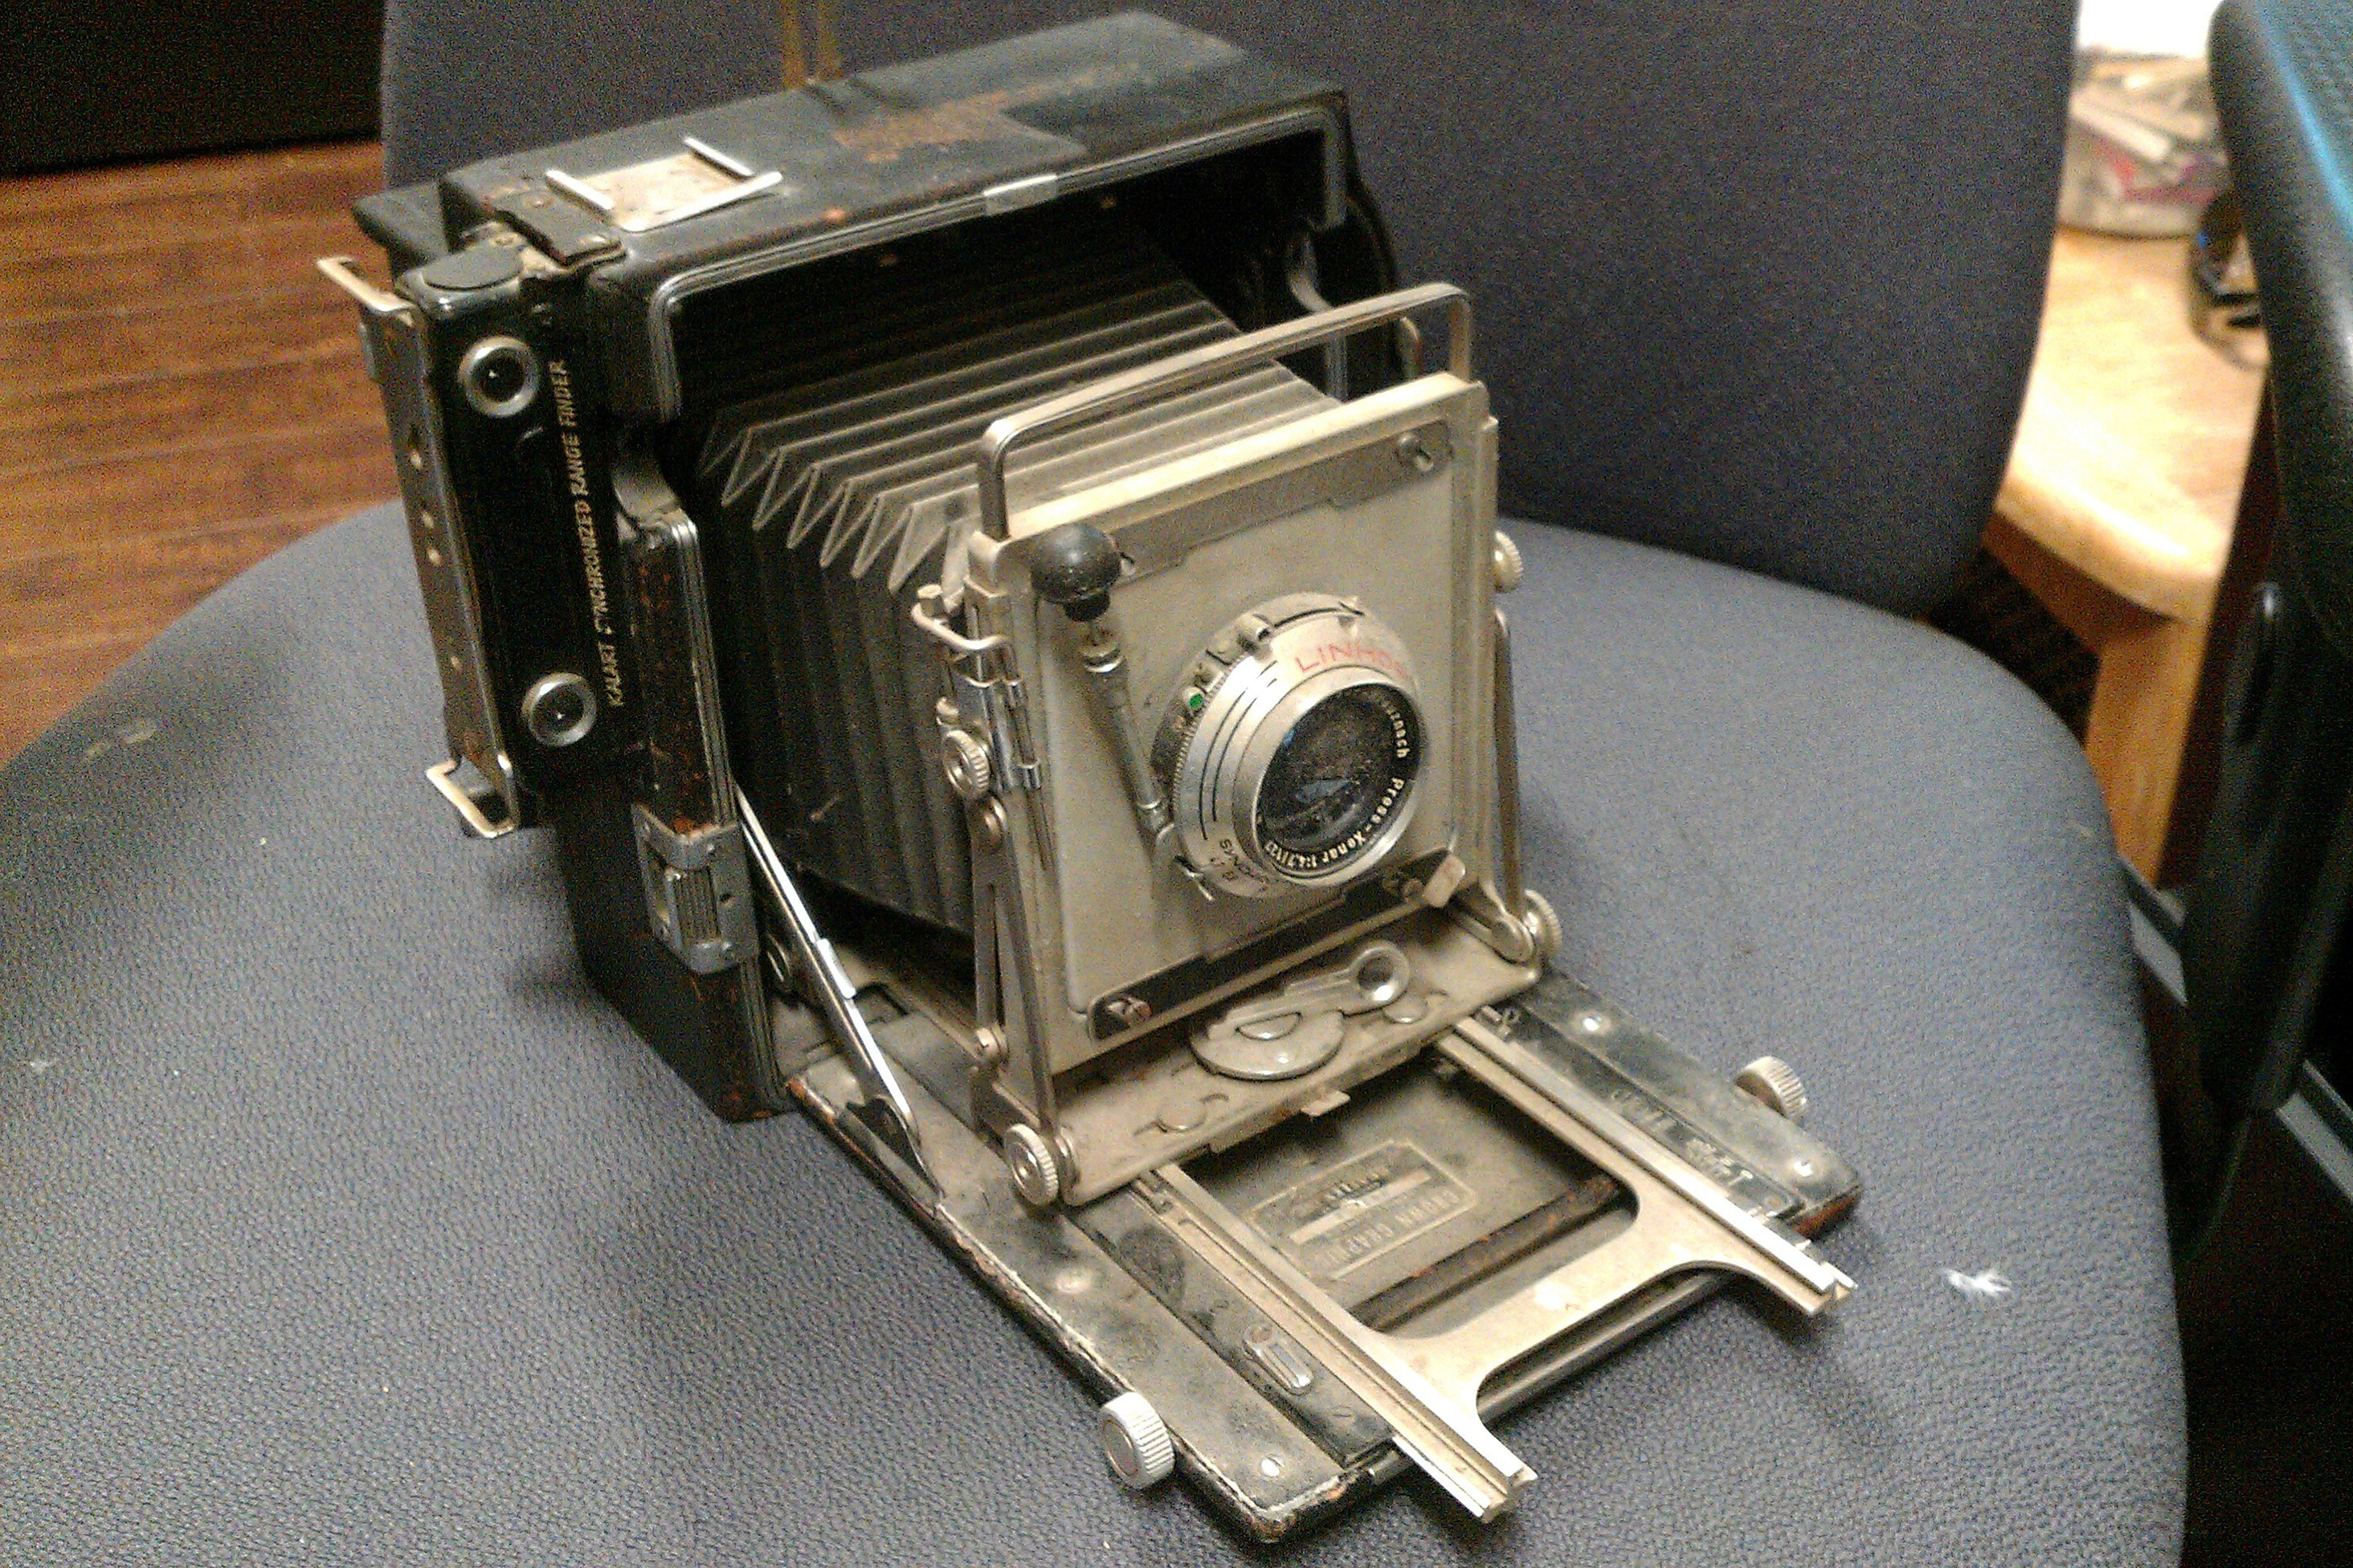 This Crown Graphic camera was likely manufactured sometime between 1947 and 1955. Many of these types of cameras were used by the press.